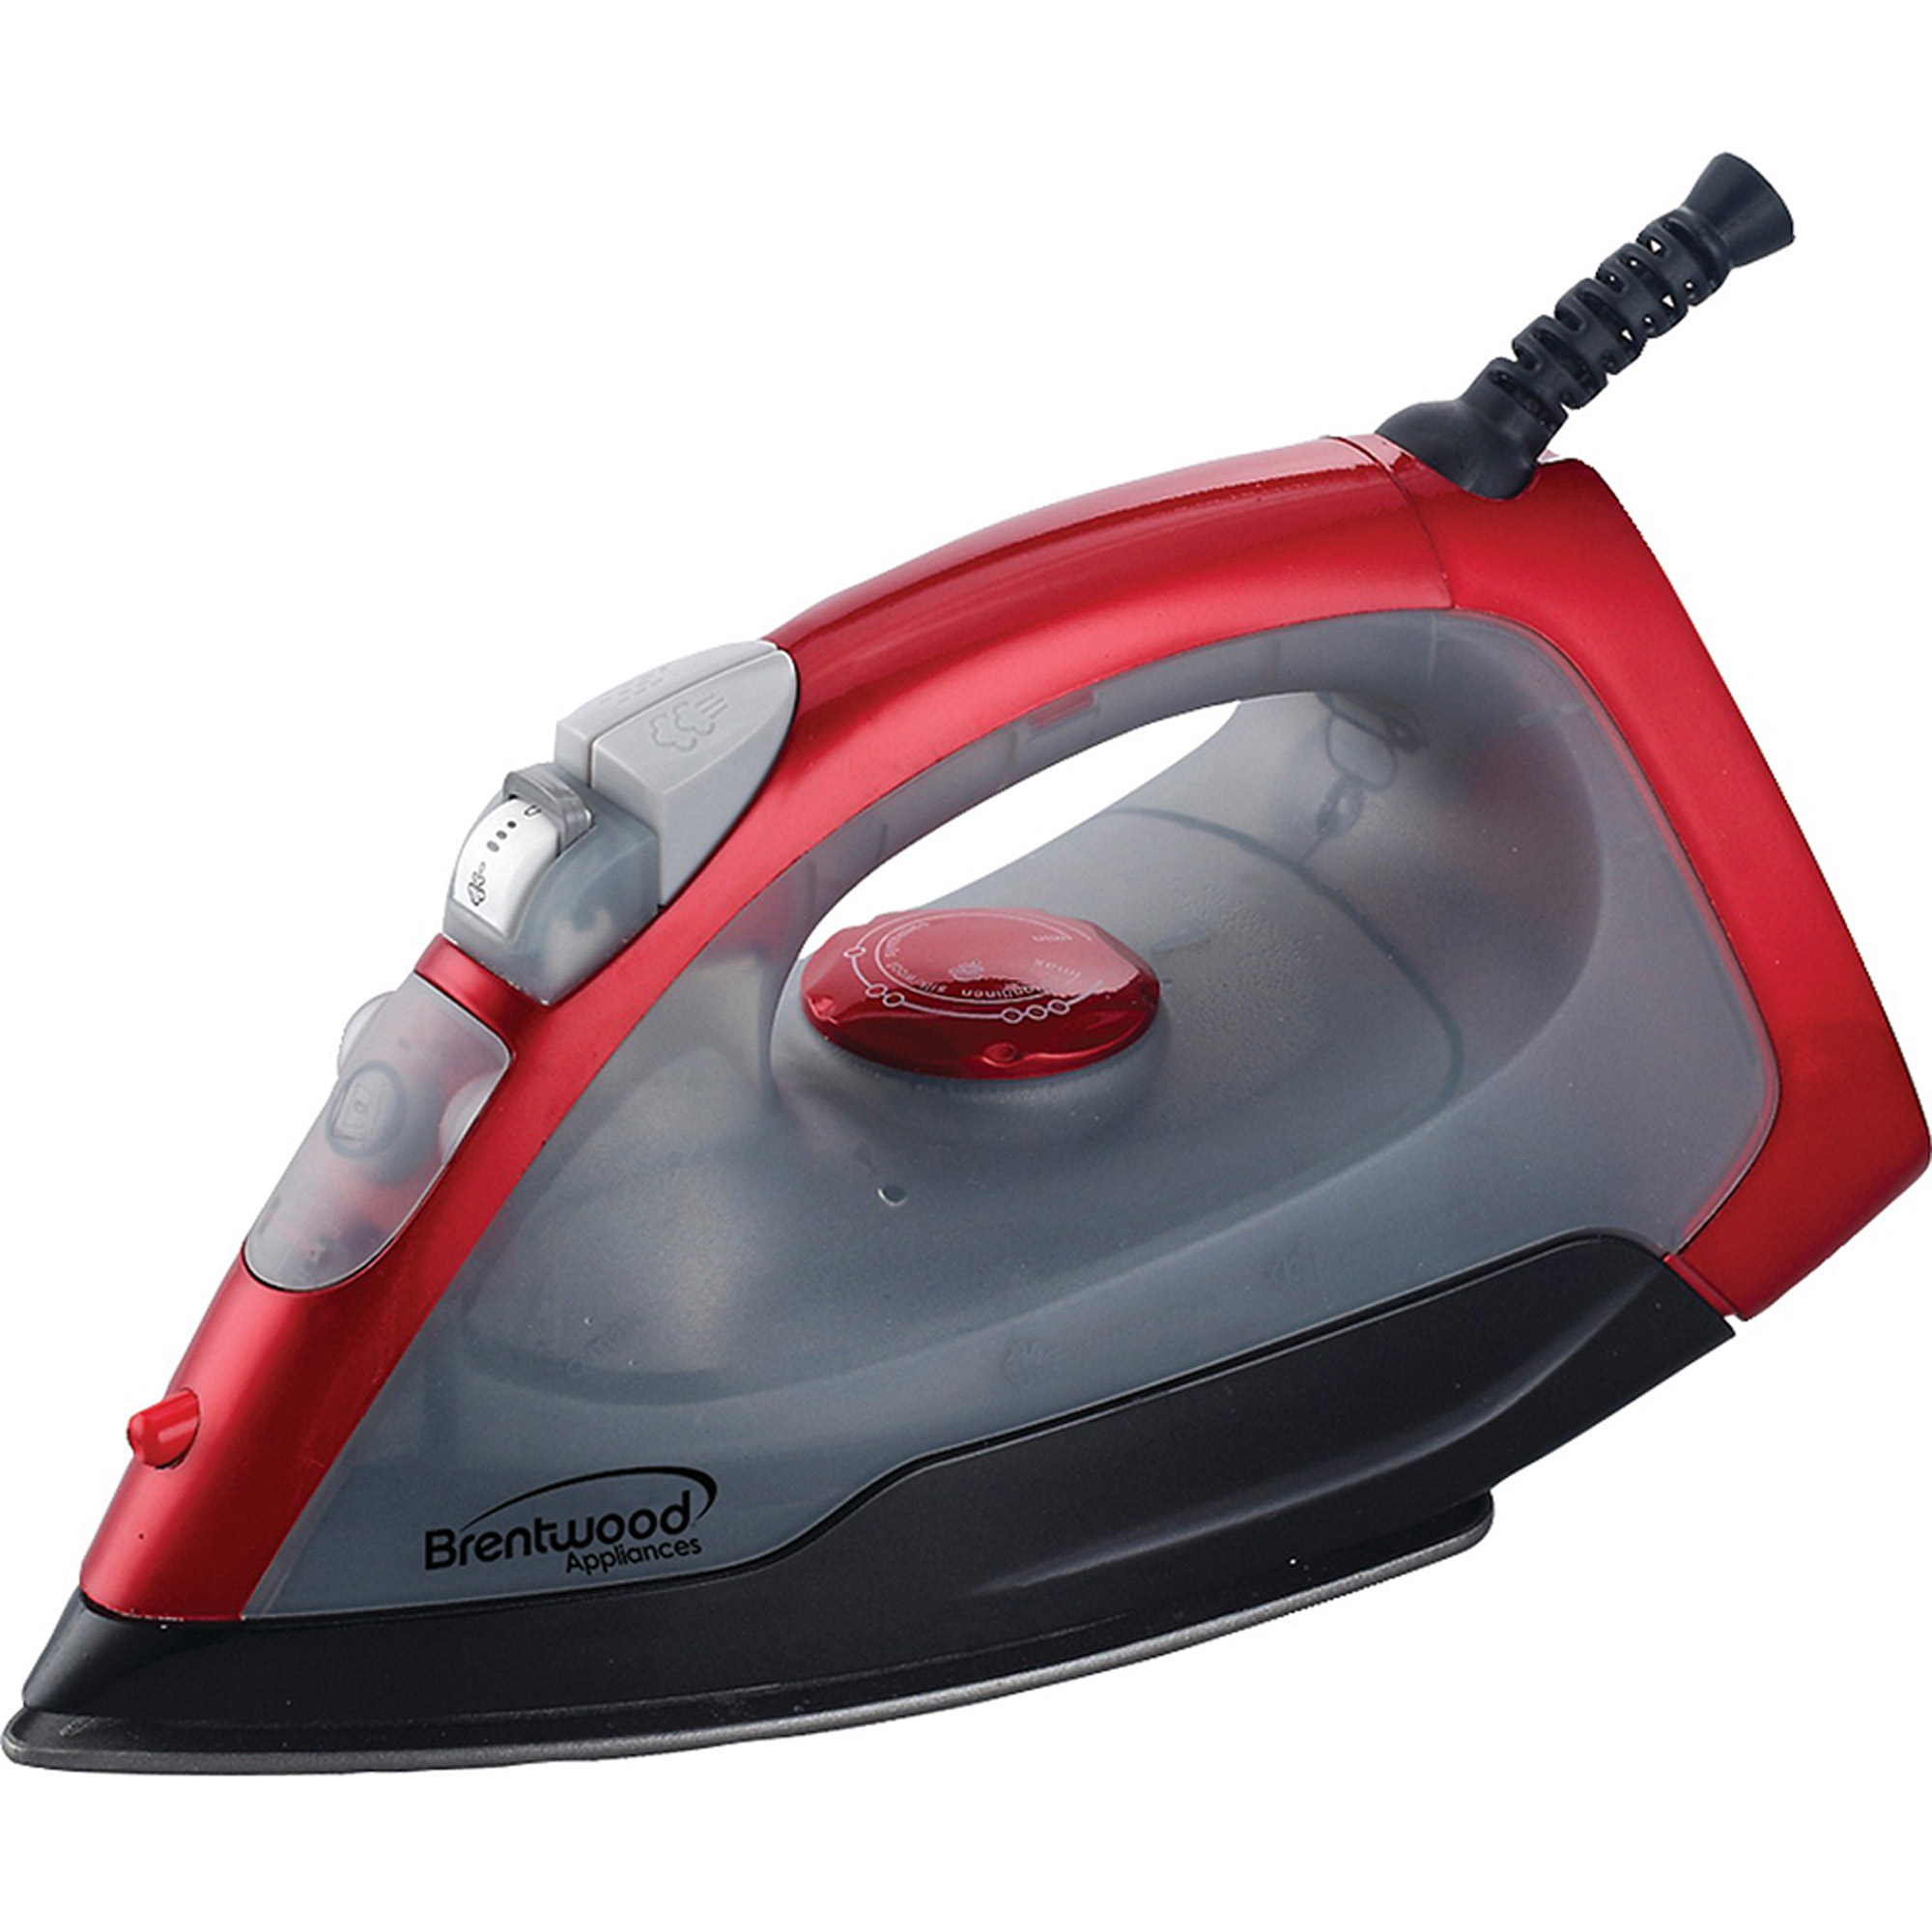 Brentwood Mpi-53 Steam, Spray and Dry Iron